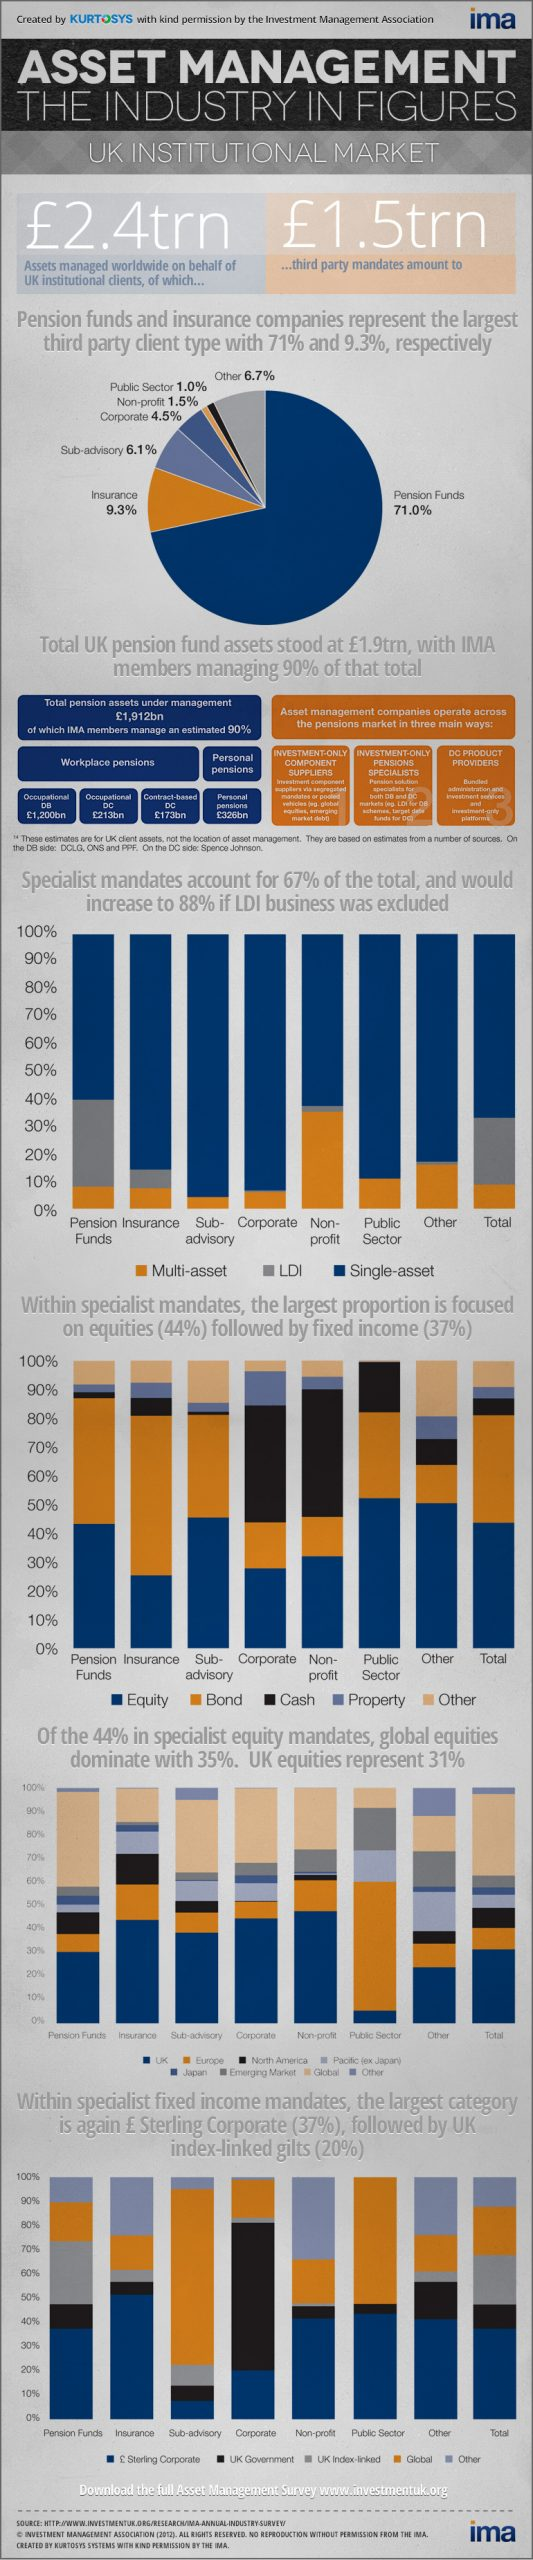 Asset Management: The UK Institutional Market in Figures [INFOGRAPHIC] 1